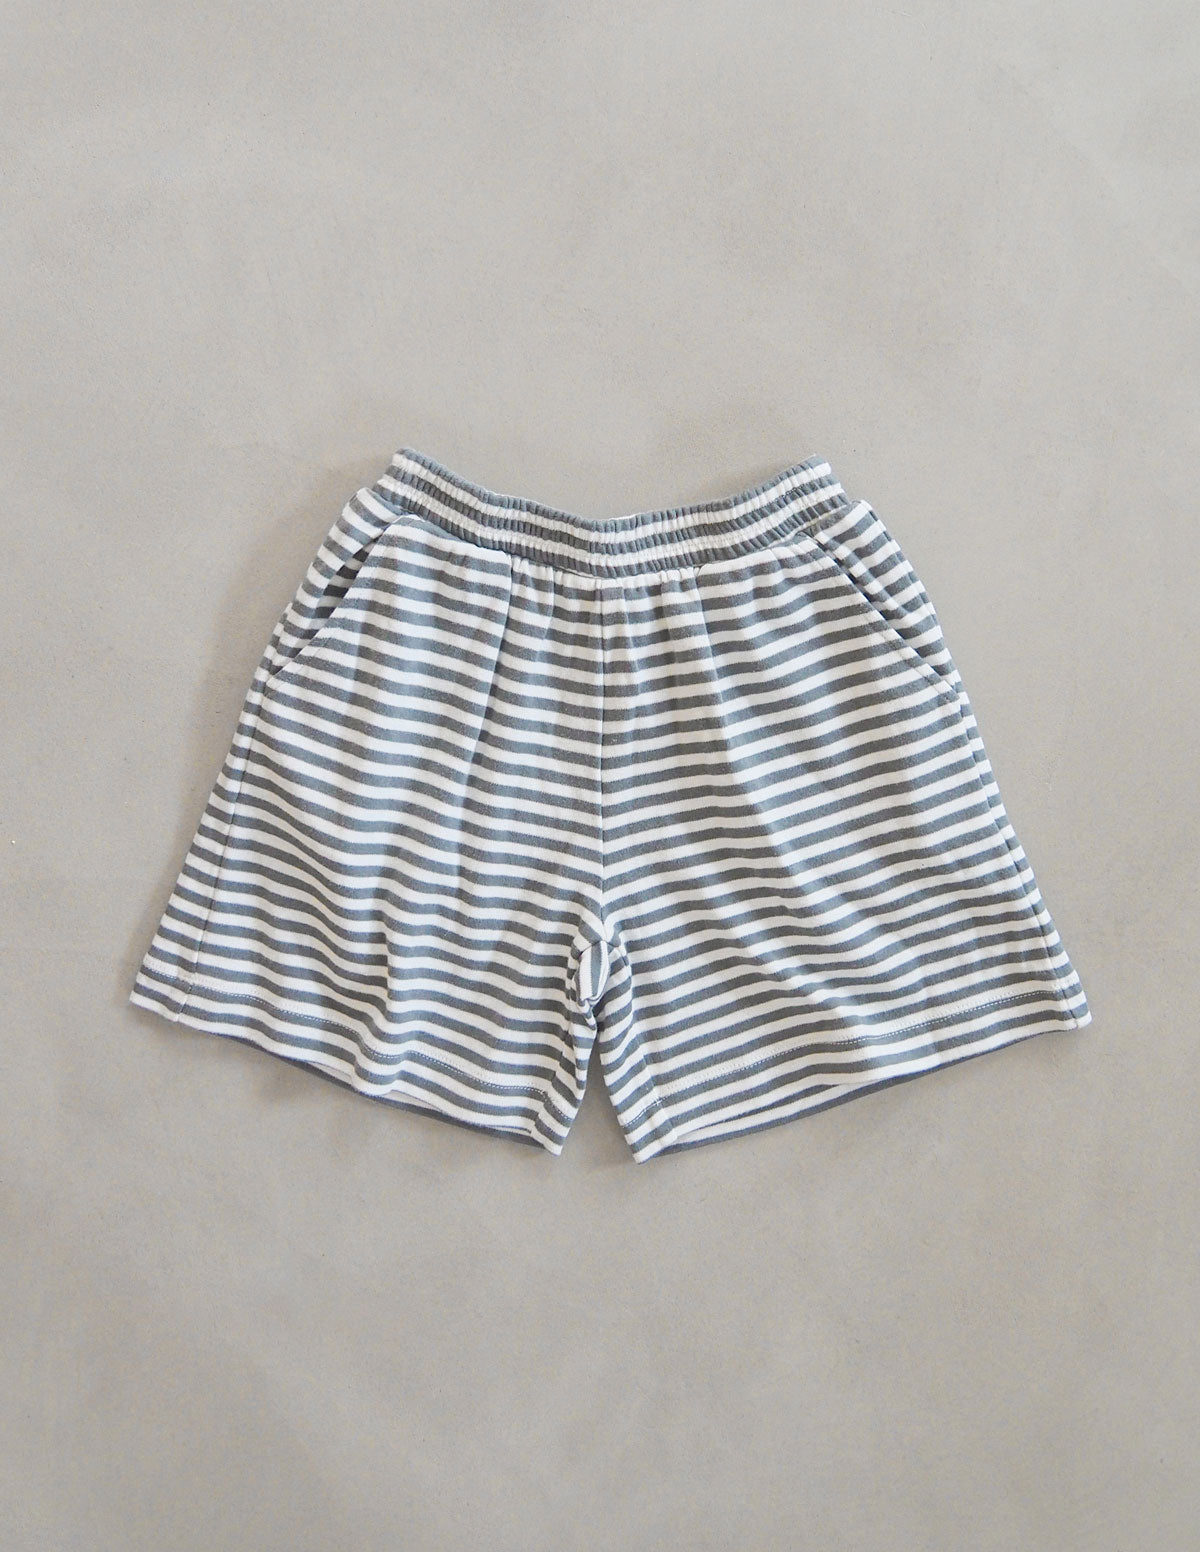 The Anyway Organic Cotton Short